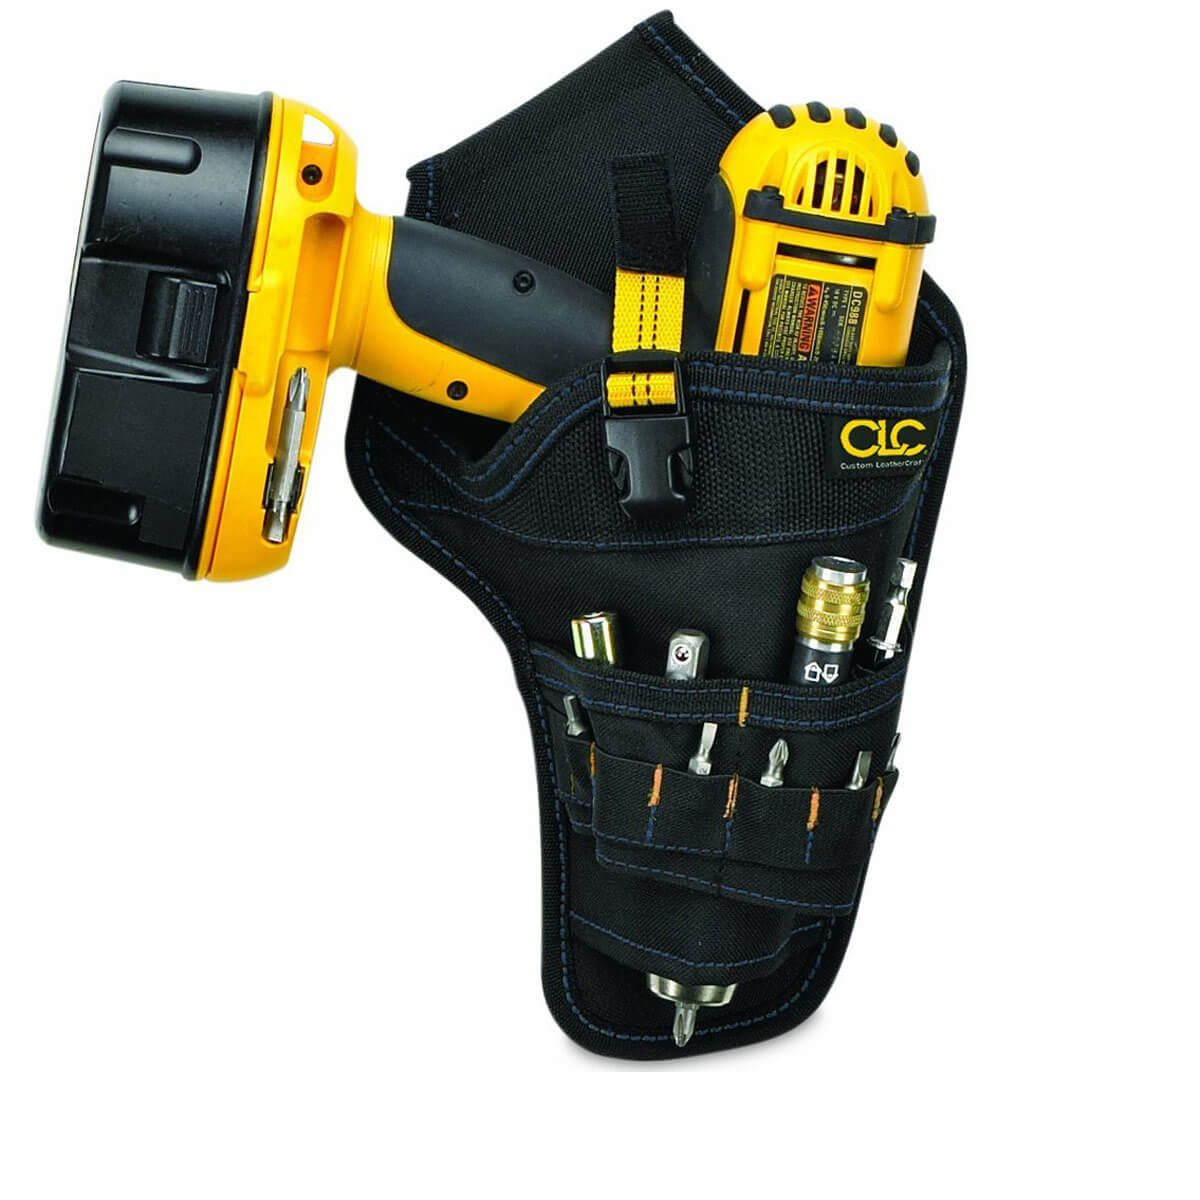 CLC Custom Leathercraft 5023 Deluxe Cordless Poly Drill Holster